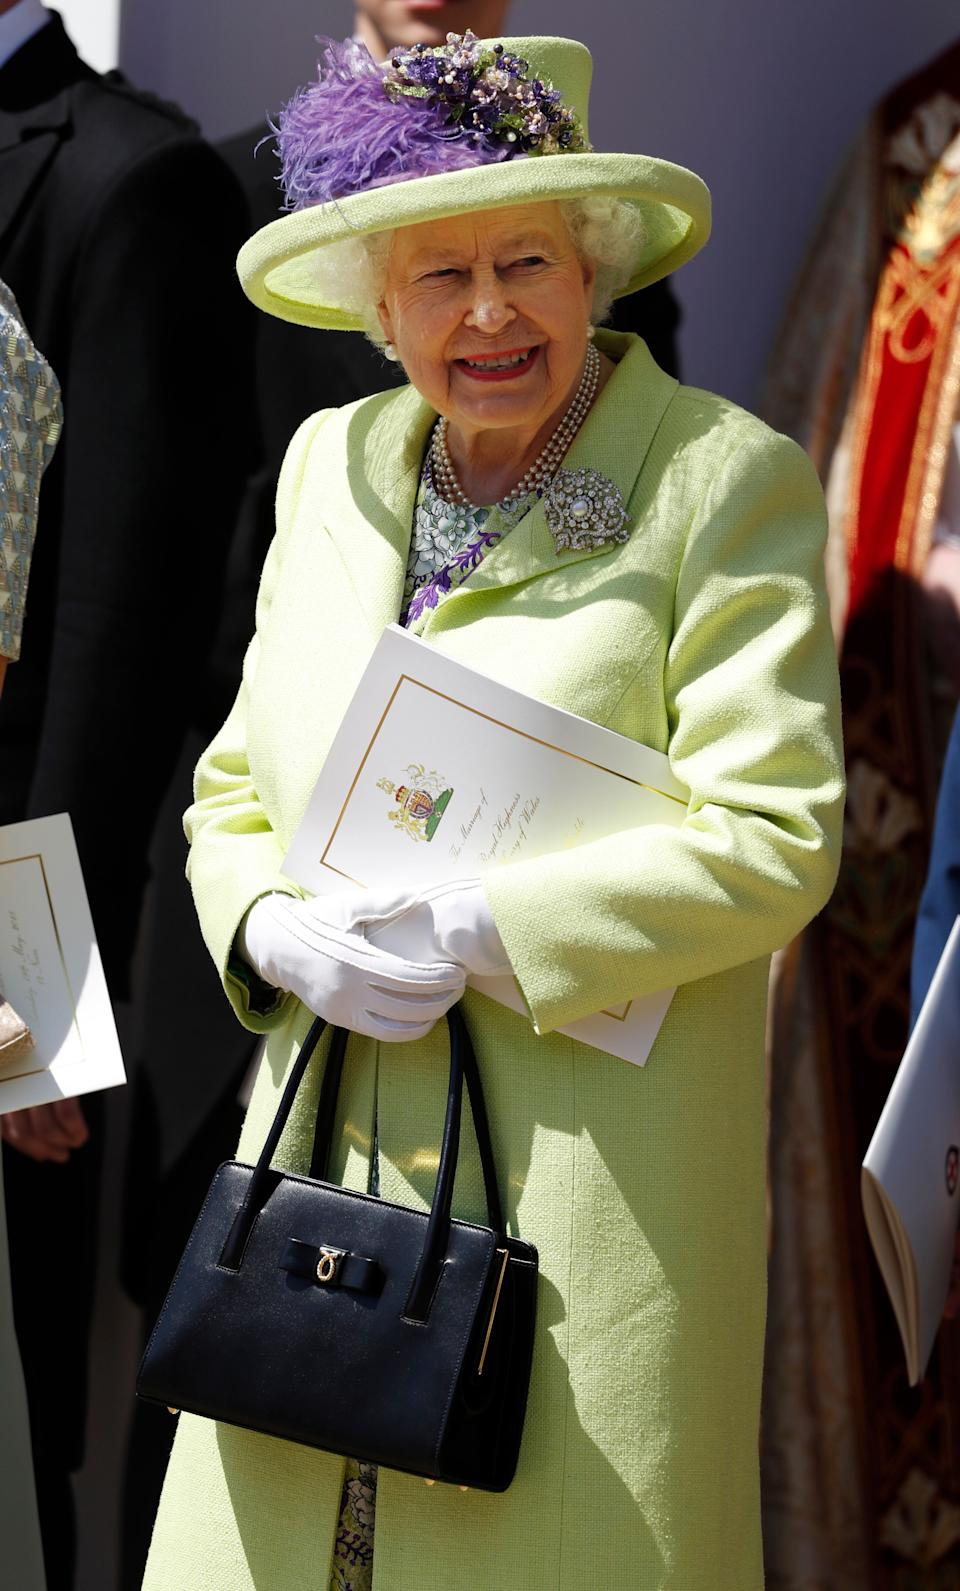 The Queen at Meghan and Harry's wedding last May [Photo: Getty]